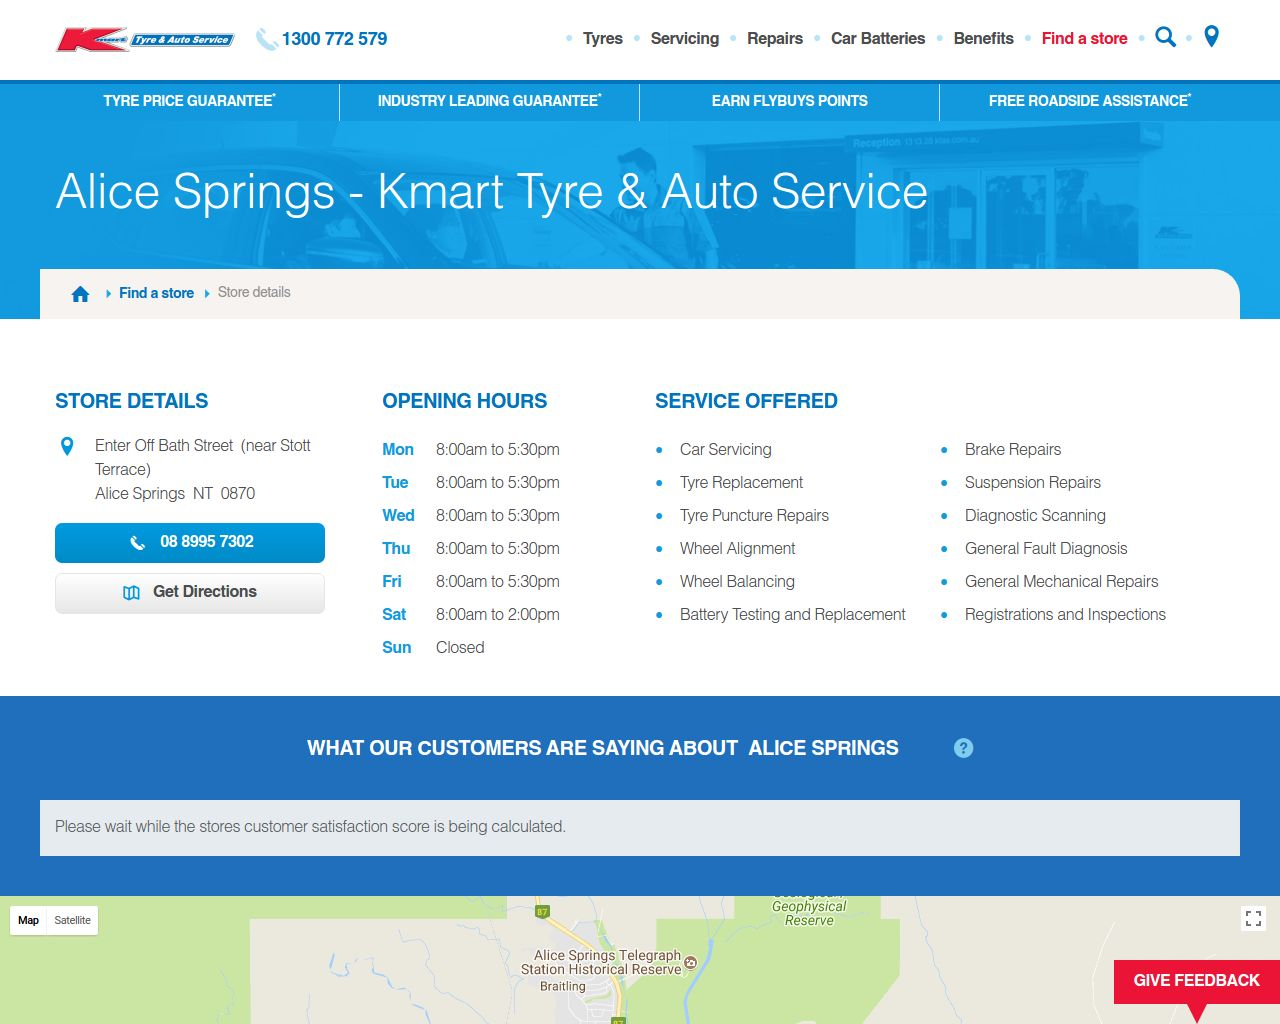 Precision Tune Auto Care Coupon Codes, Promos & Sales. Want the best Precision Tune Auto Care coupon codes and sales as soon as they're released?